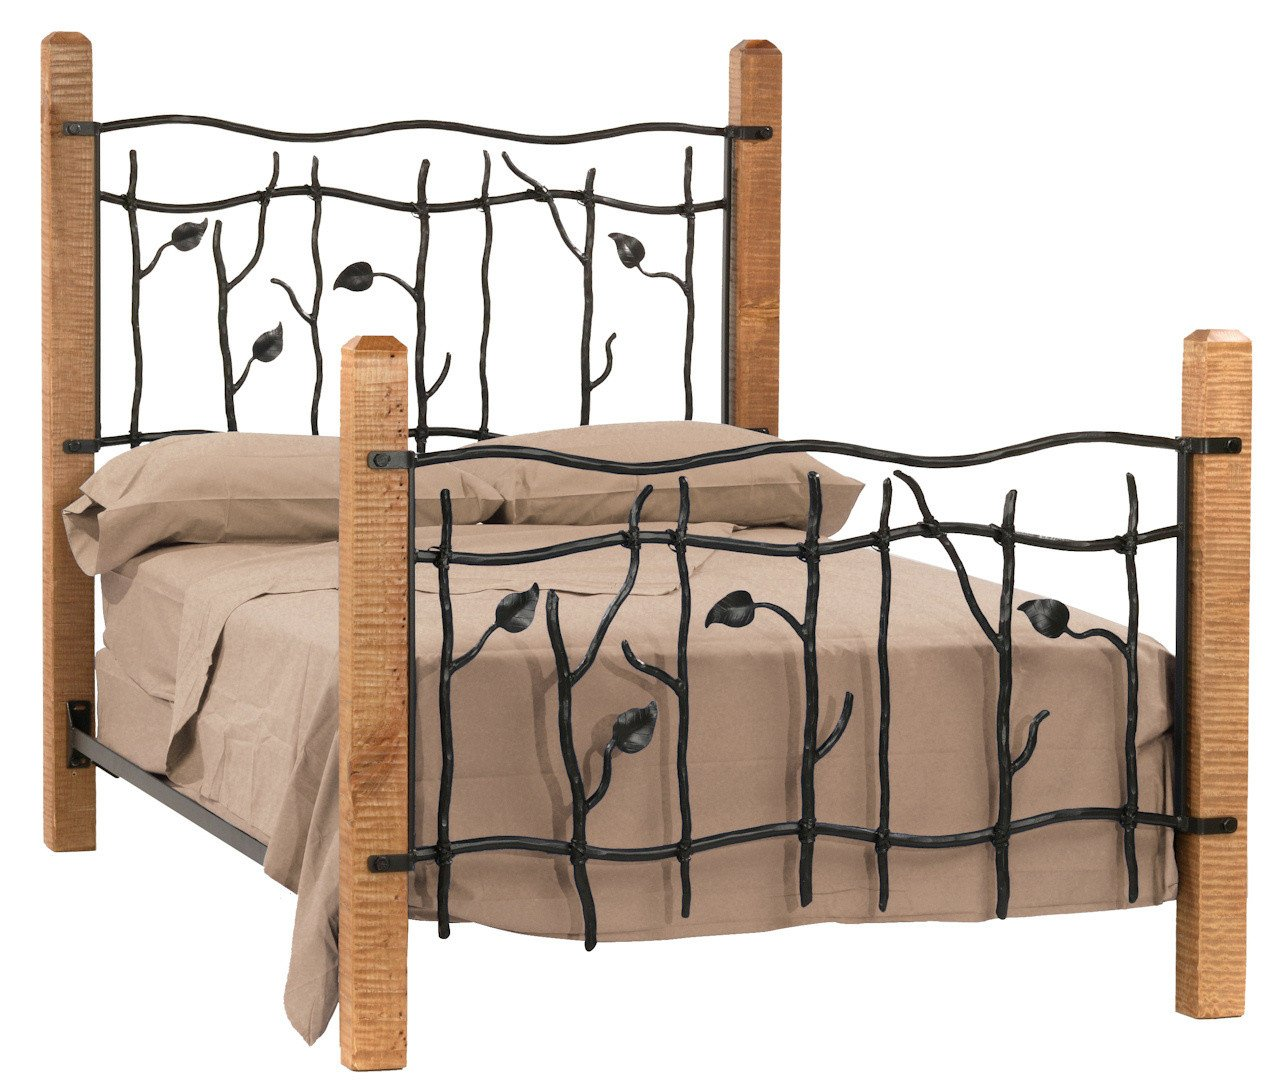 Sassafras California King Bed - Stone County Bed Image